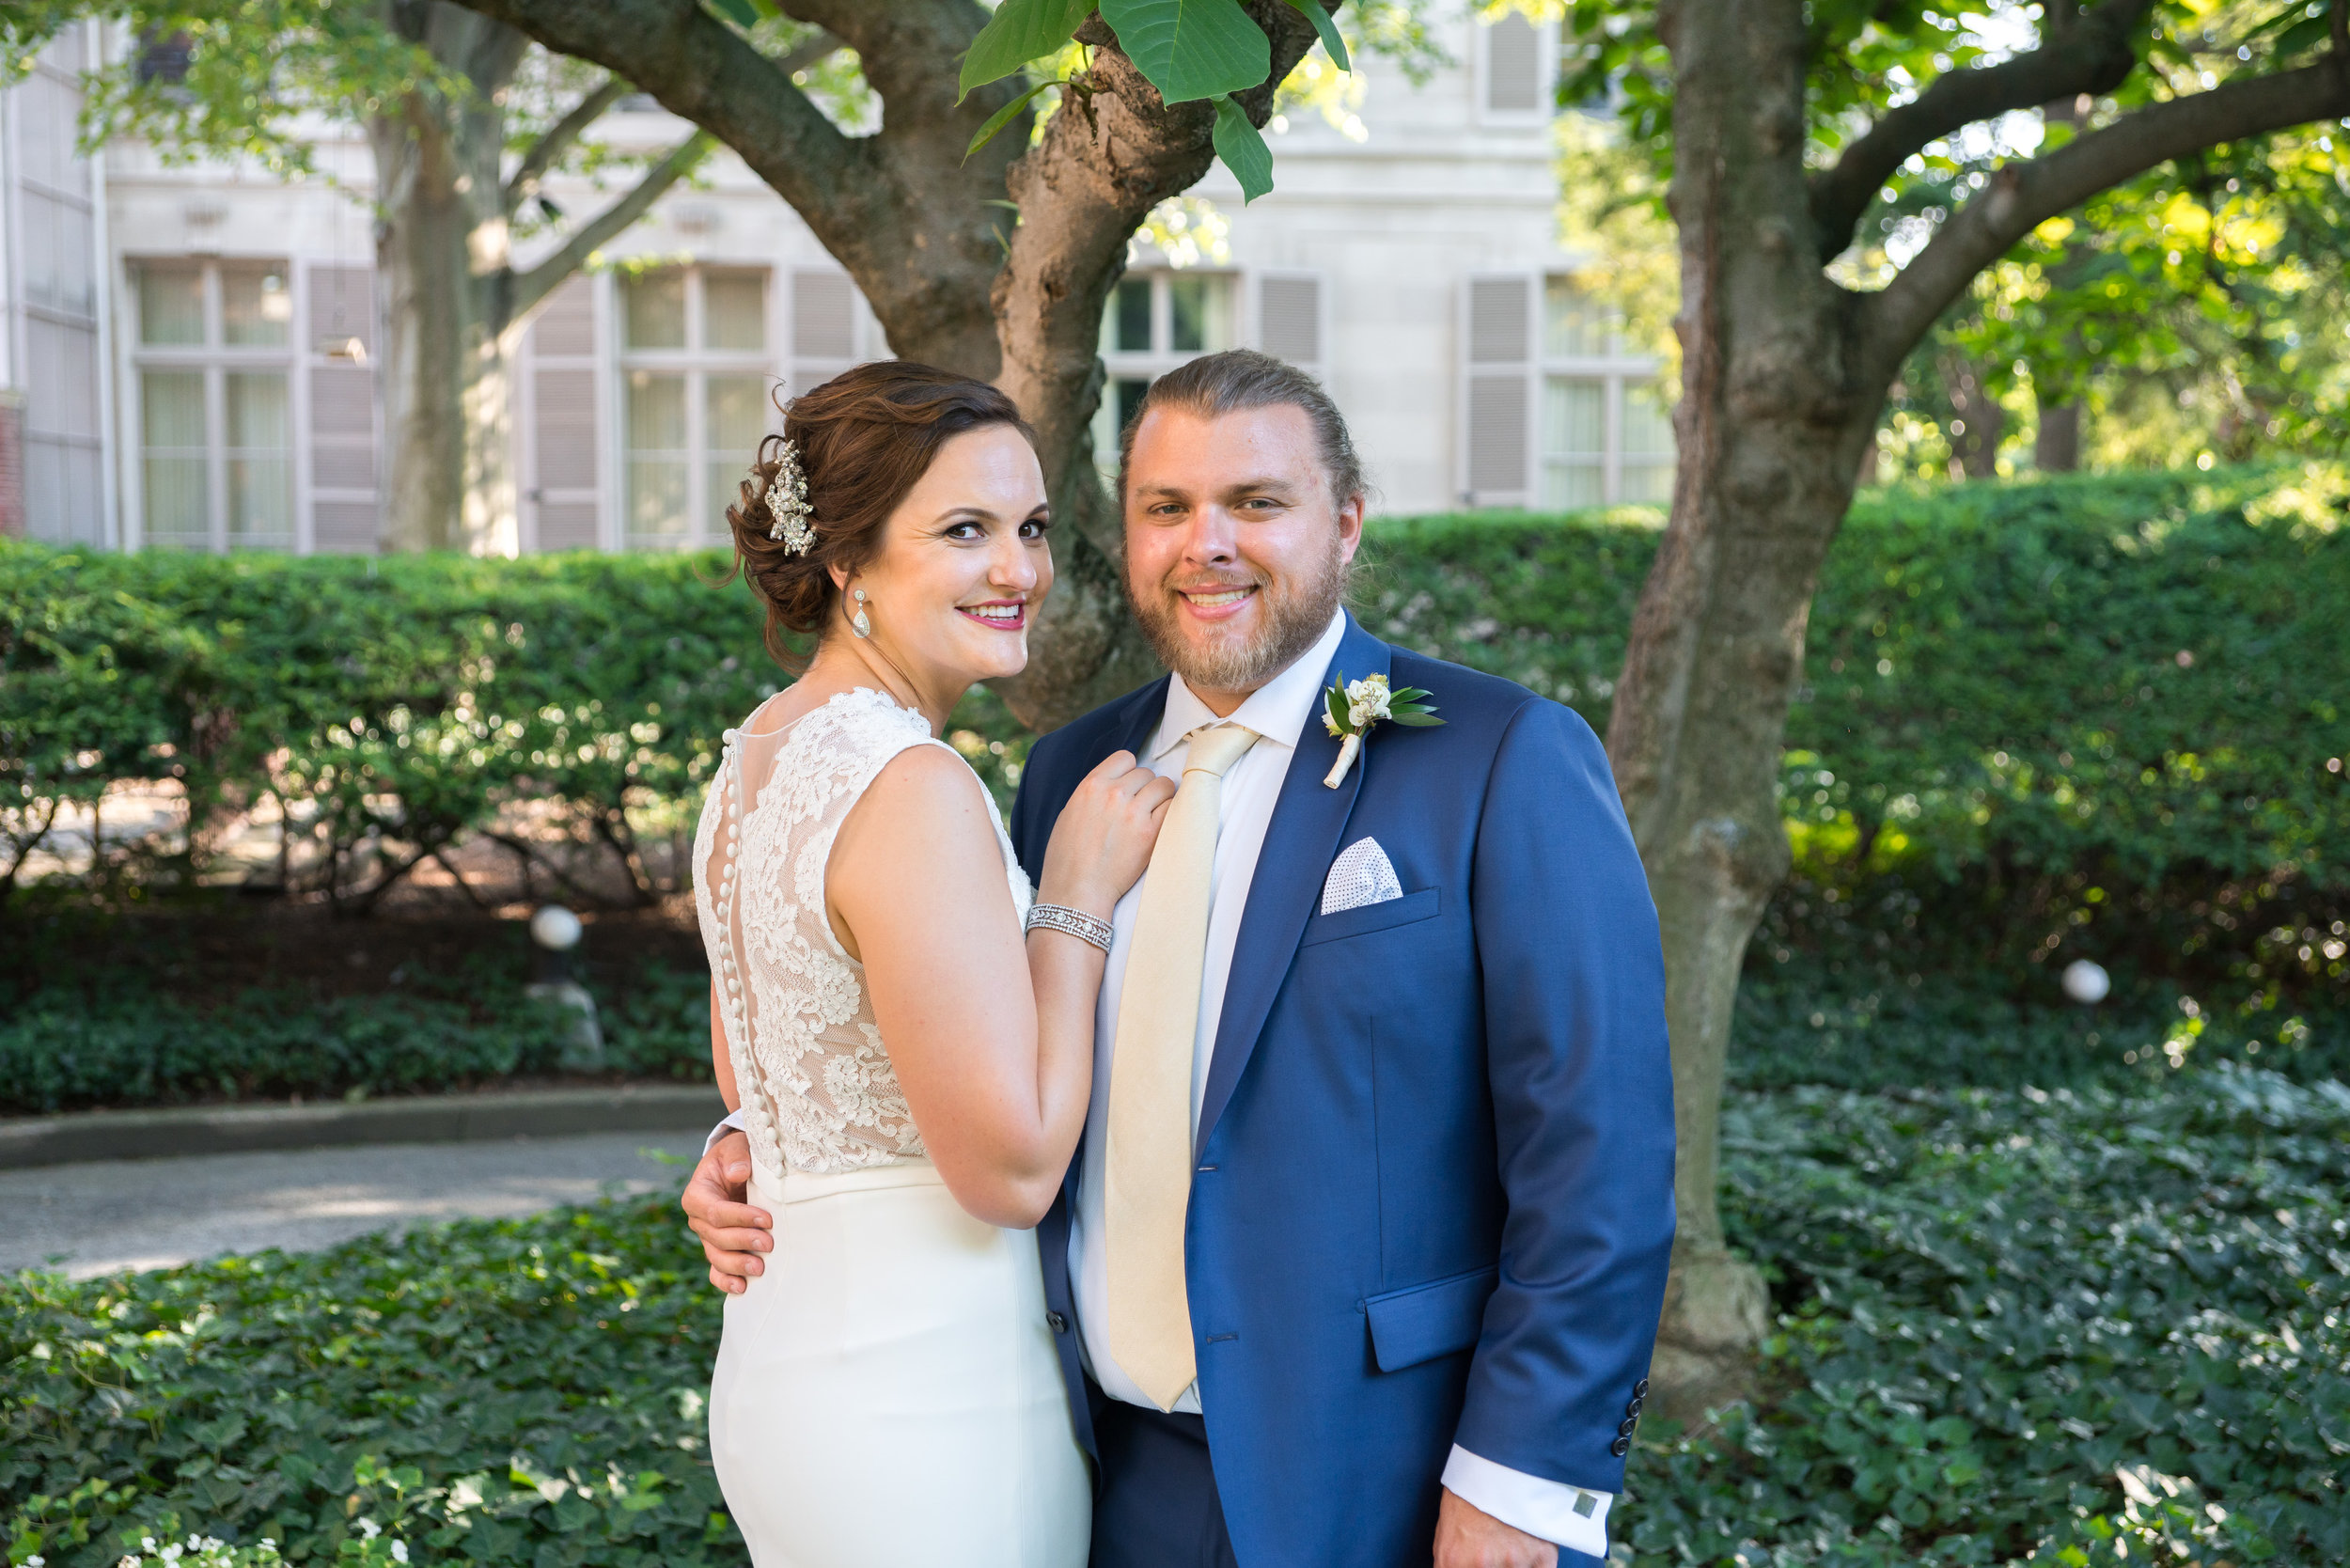 BRide and groom at a summer wedding at meridian house